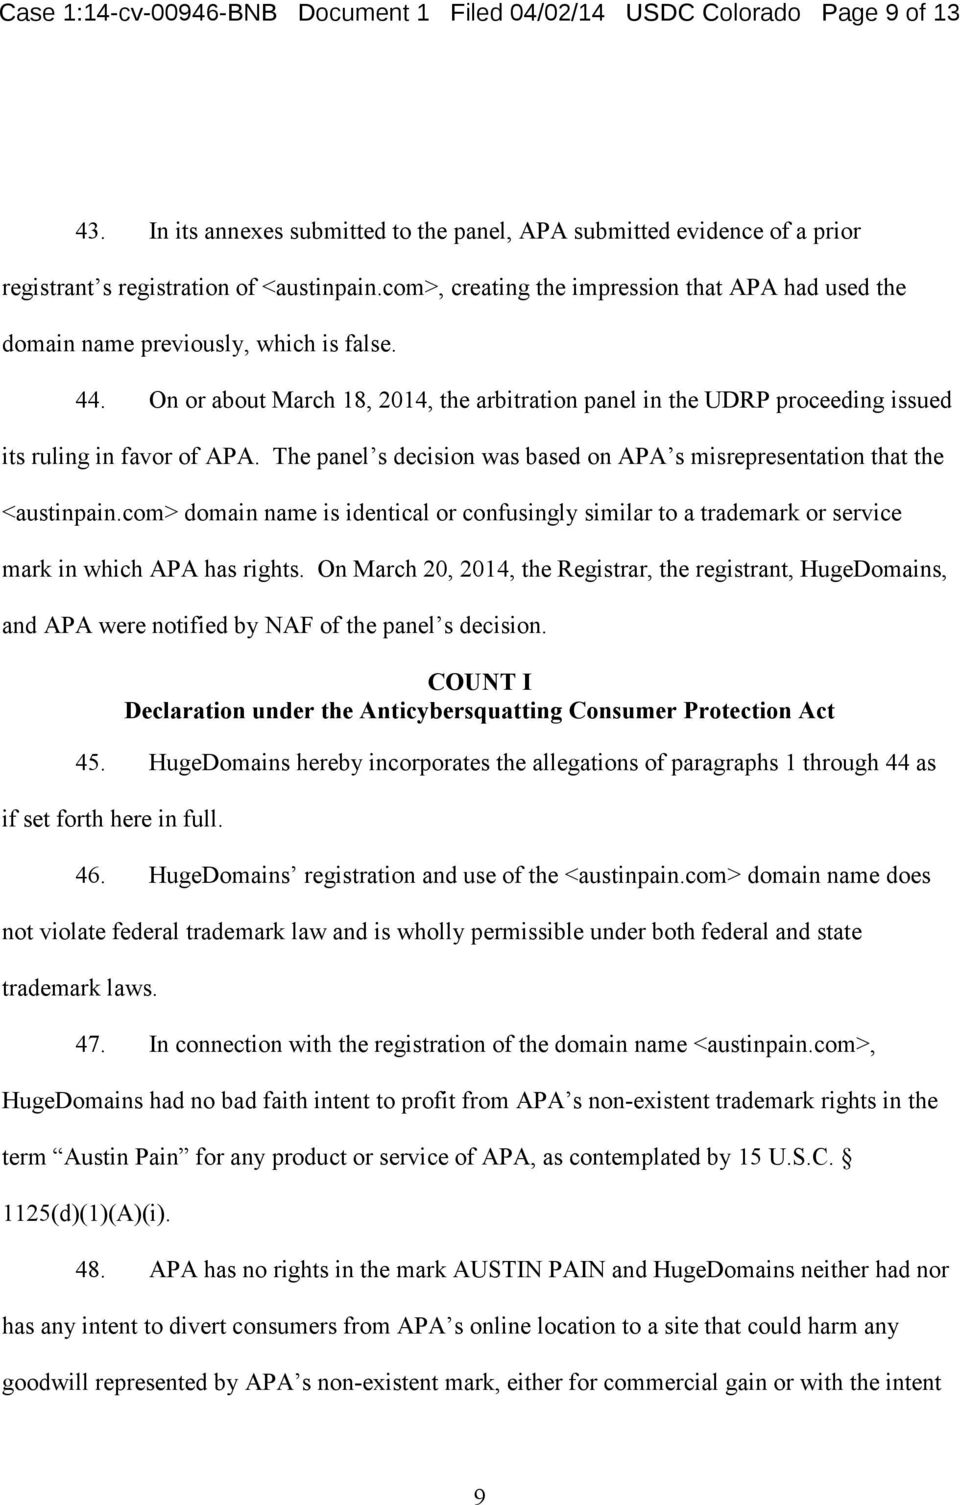 On or about March 18, 2014, the arbitration panel in the UDRP proceeding issued its ruling in favor of APA. The panel s decision was based on APA s misrepresentation that the <austinpain.